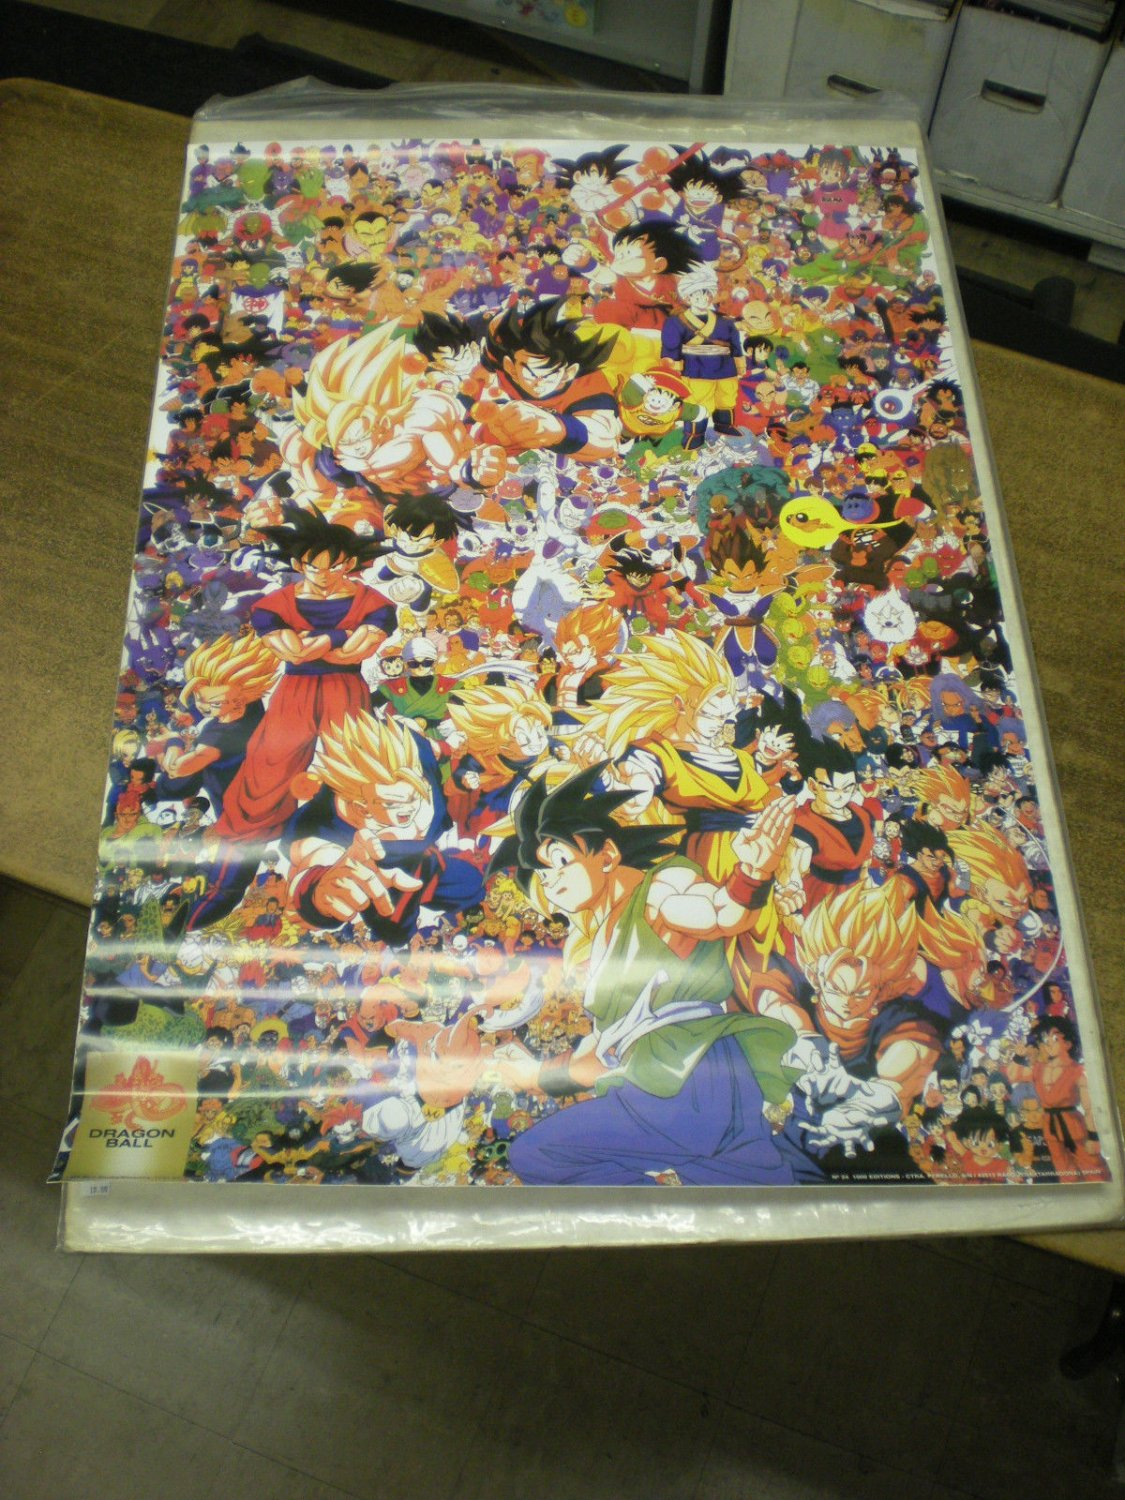 GIGANTIC HUGE VINTAGE 1989 DRAGONBALL CHARACTER COLLAGE POSTER 26 x 39 inches